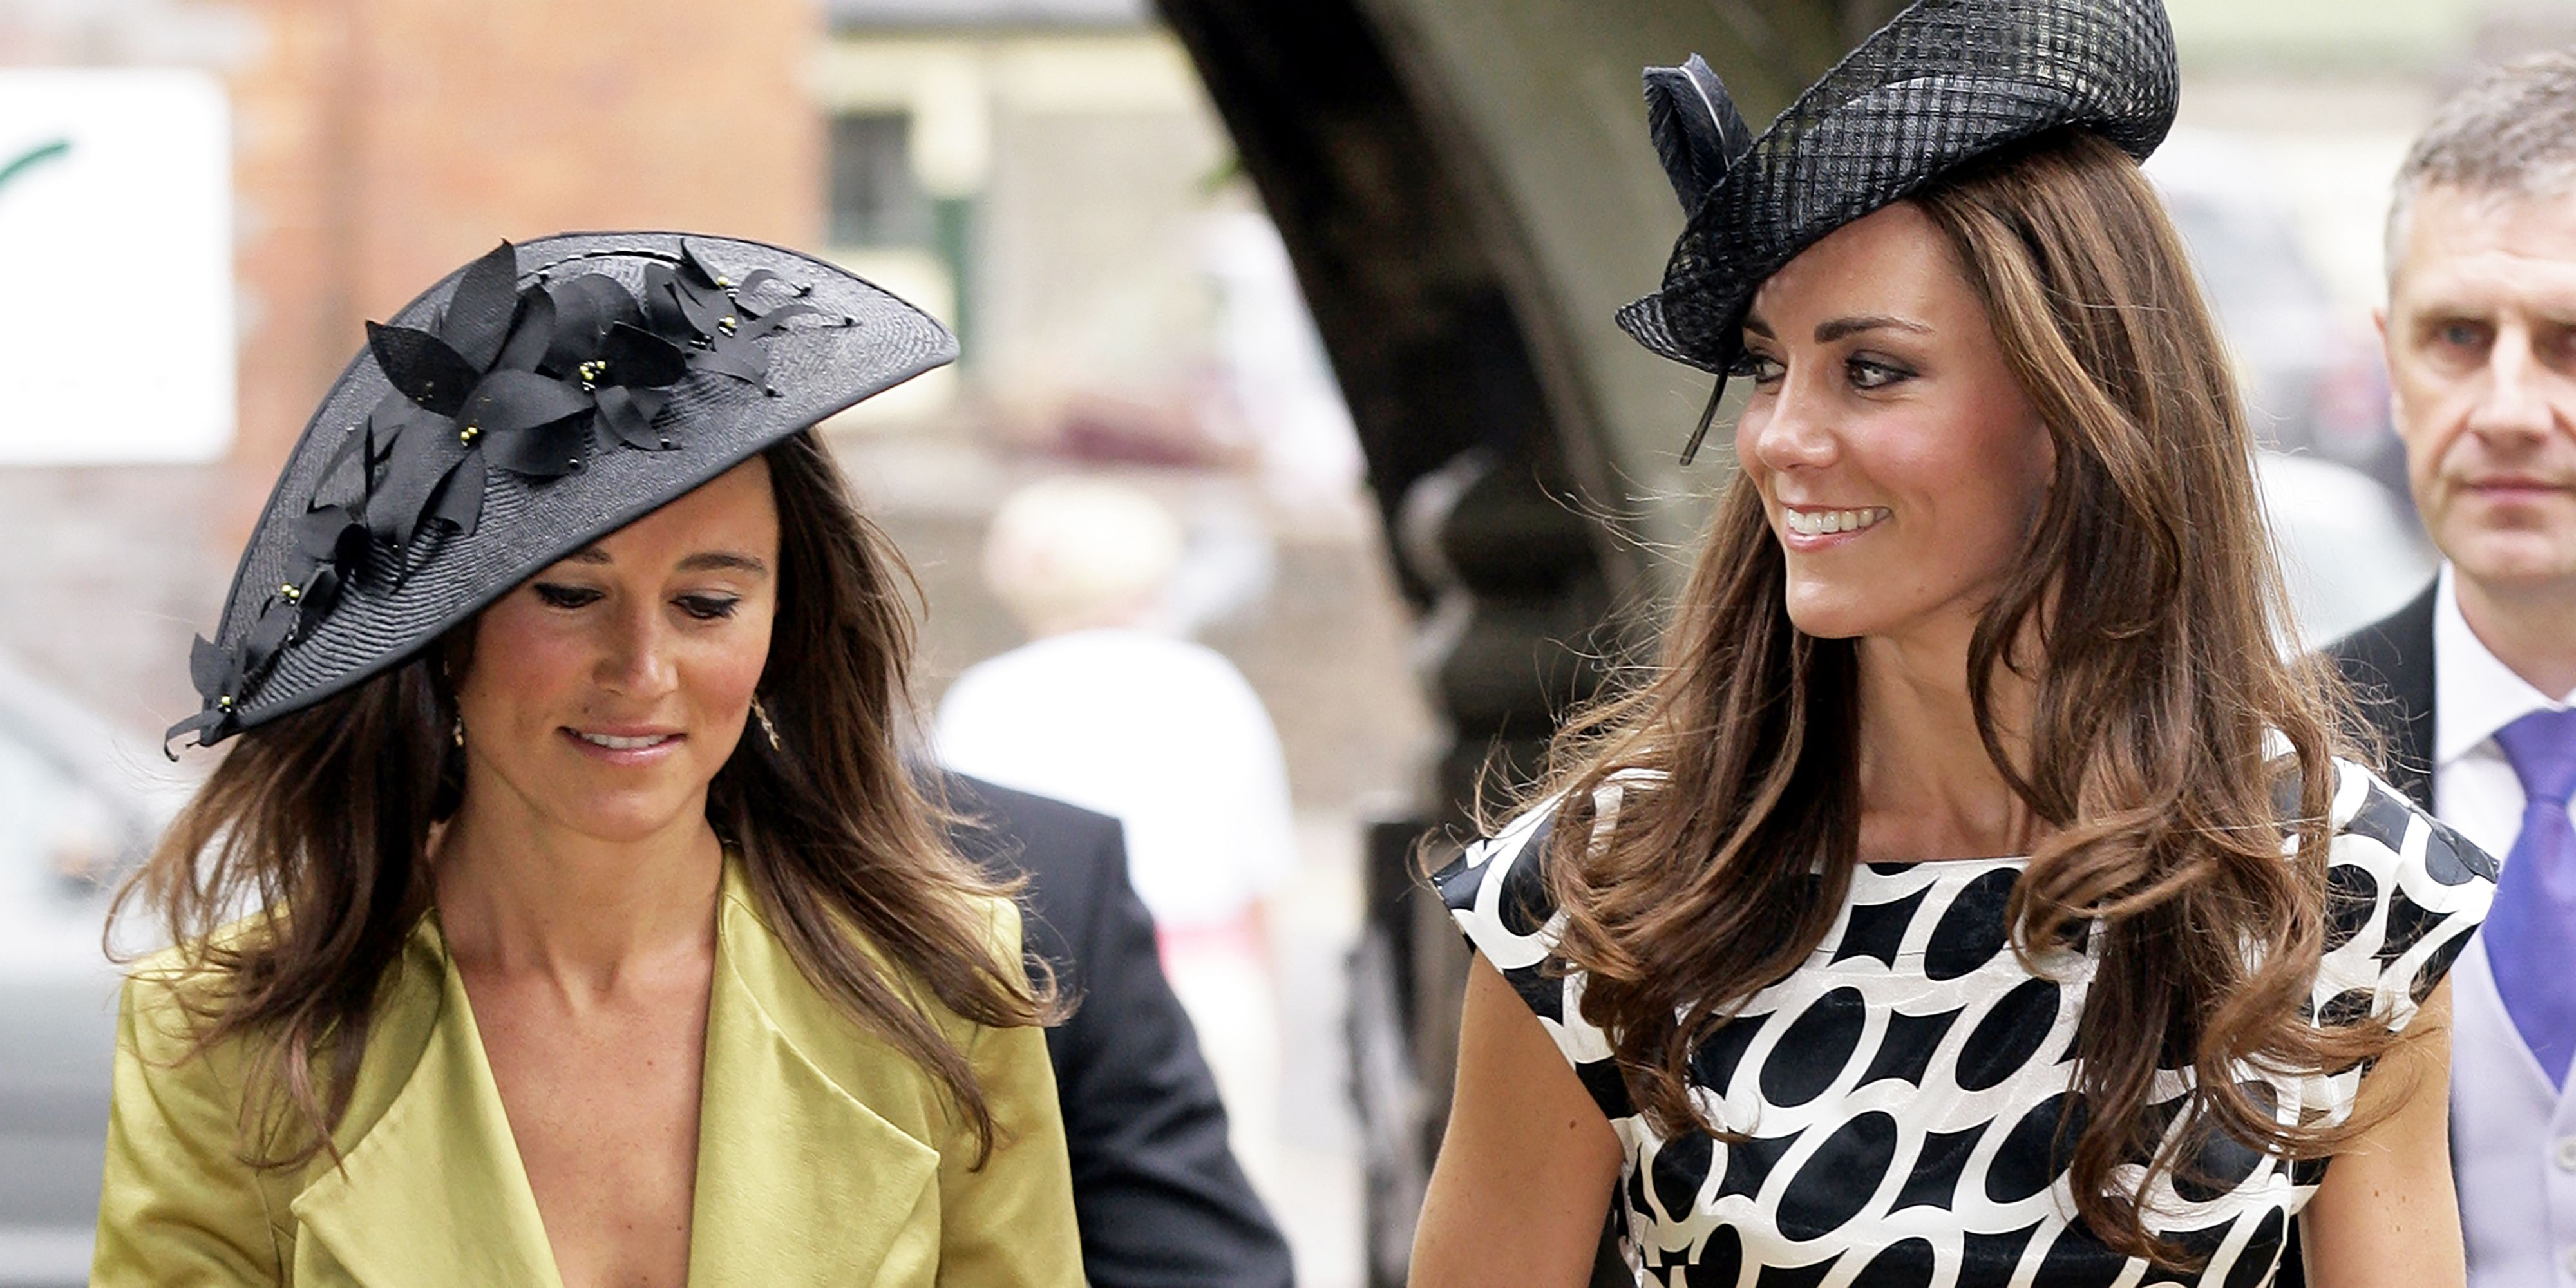 06a9d19f93b 20 Times Kate Middleton and Pippa Middleton Basically Wore the Same Outfit